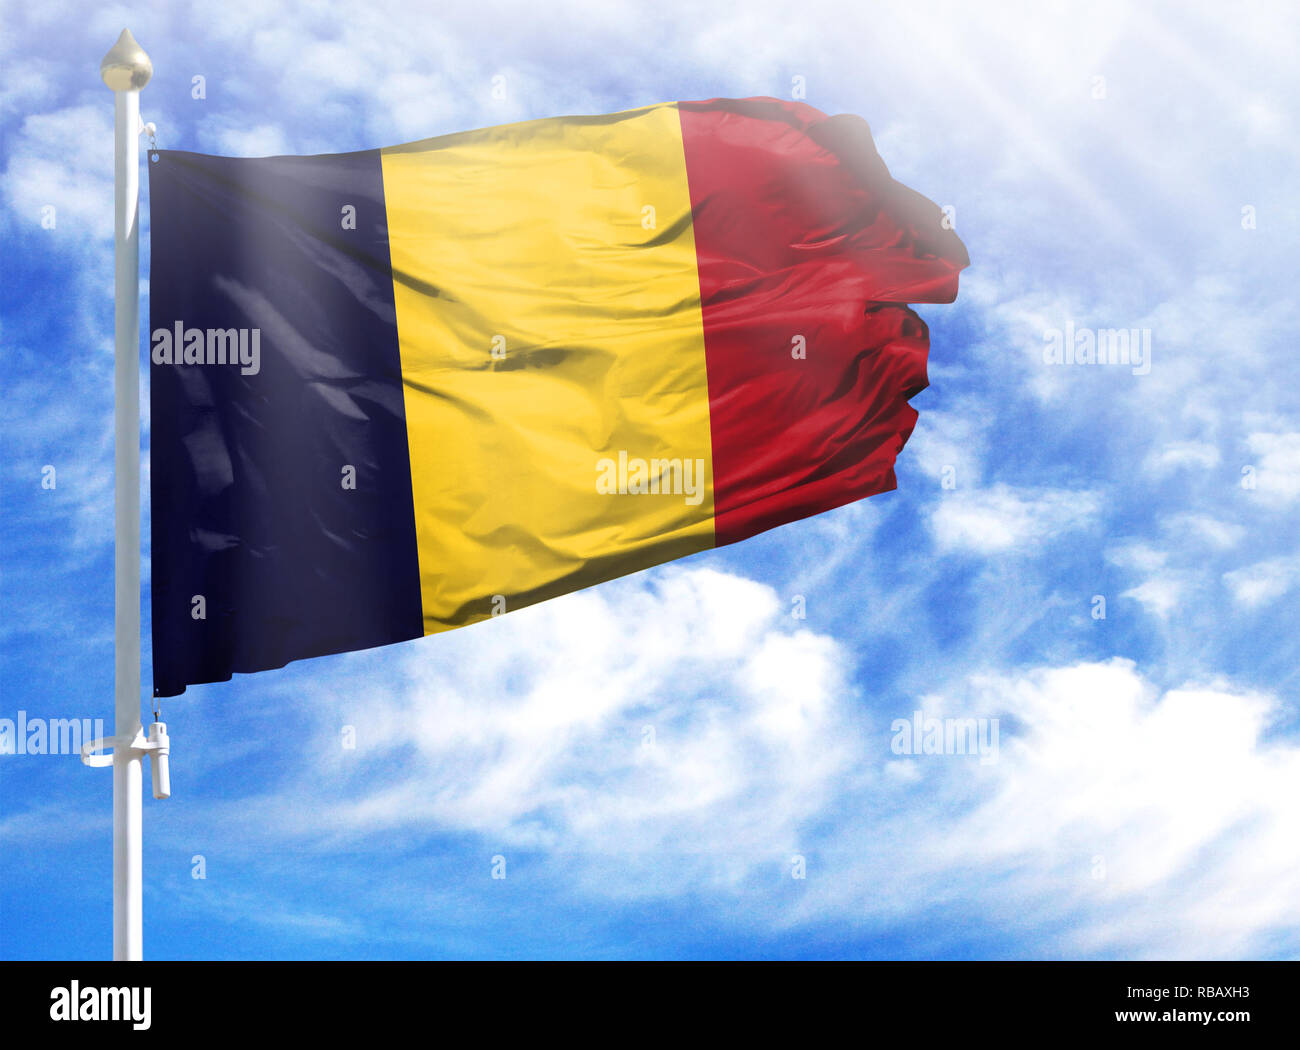 National flag of Chad on a flagpole in front of blue sky. - Stock Image